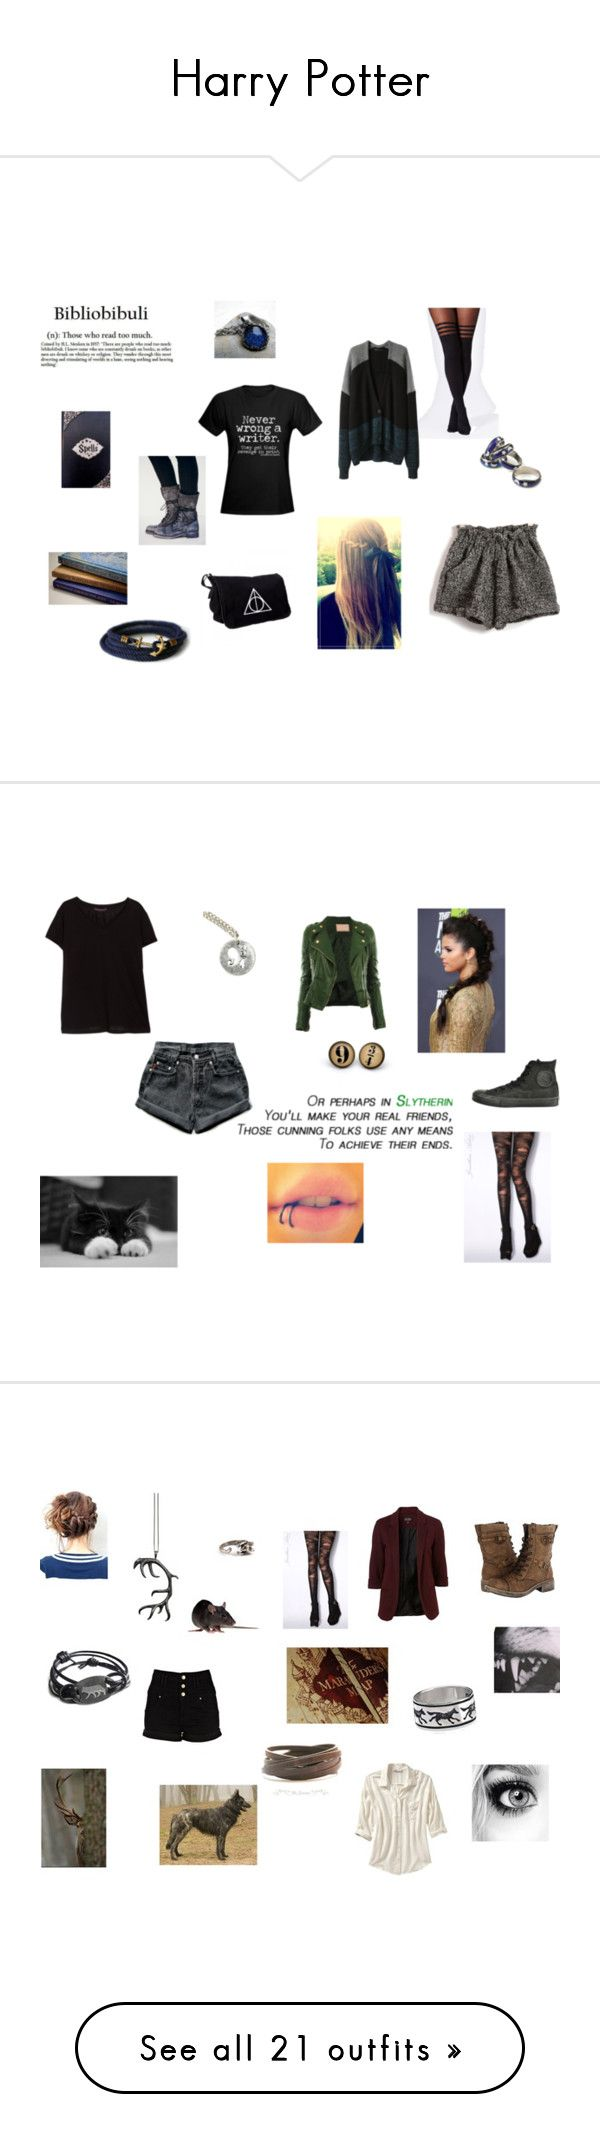 """Harry Potter"" by ronjalykke ❤ liked on Polyvore featuring Free People, Anello, Rare London, Alexander Wang, Jonathan Aston, Levi's, Violeta by Mango, Converse, harrypotter and slytherin"